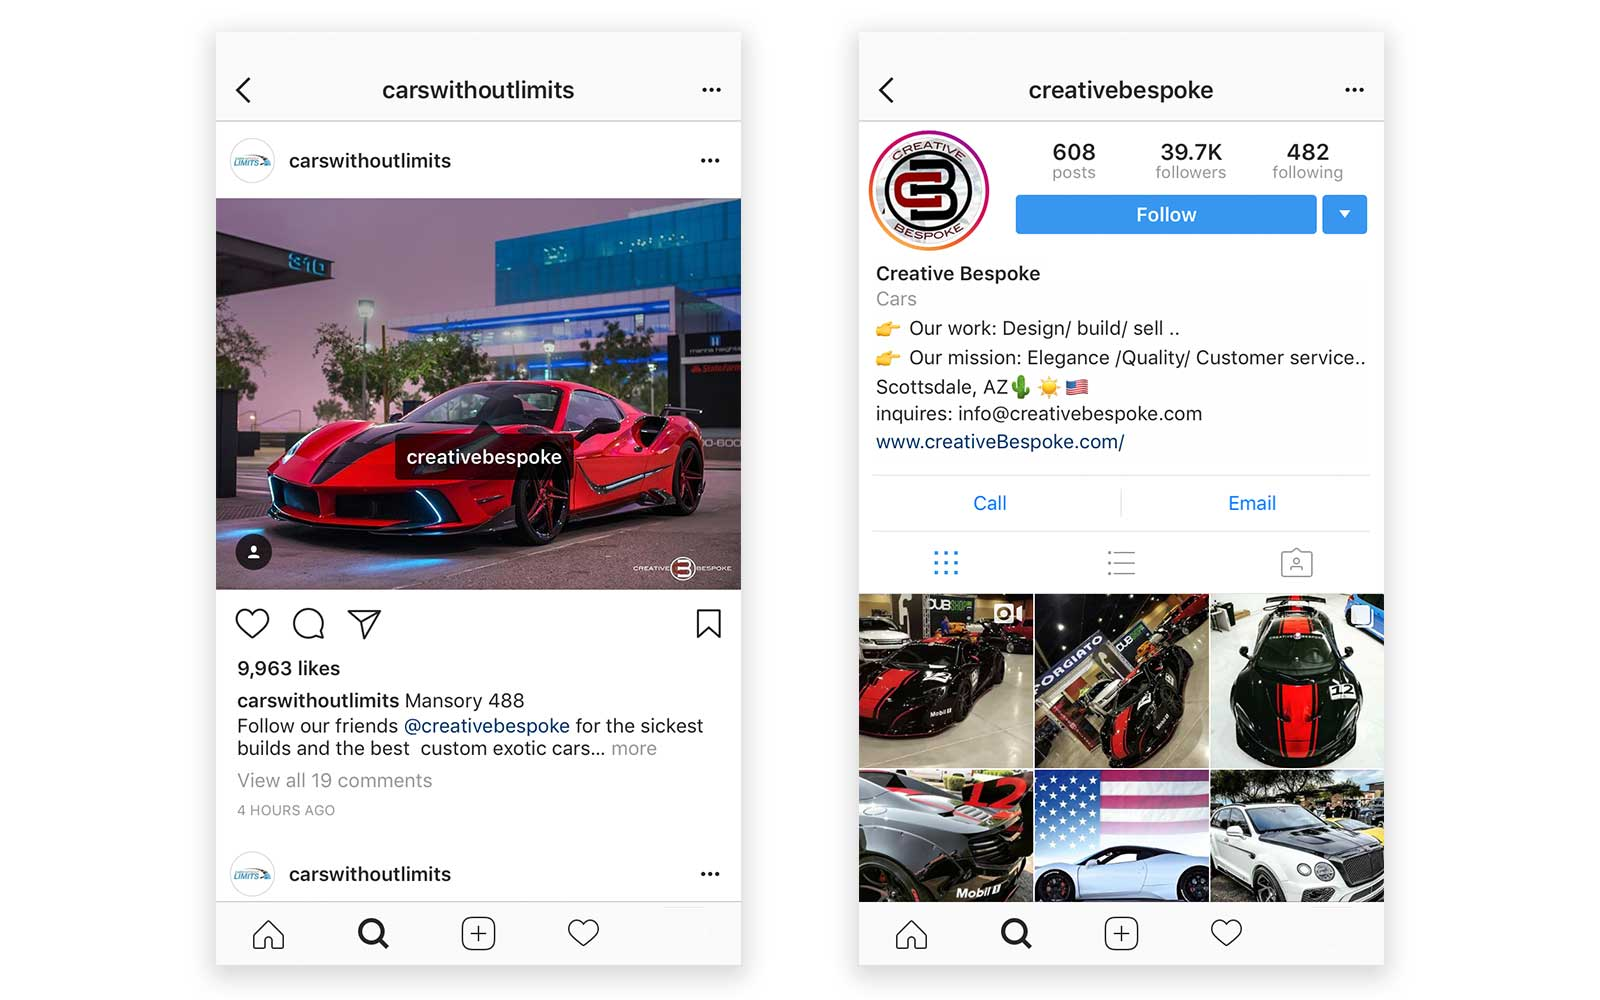 instagram tagging creativebespoke carswithoutlimits